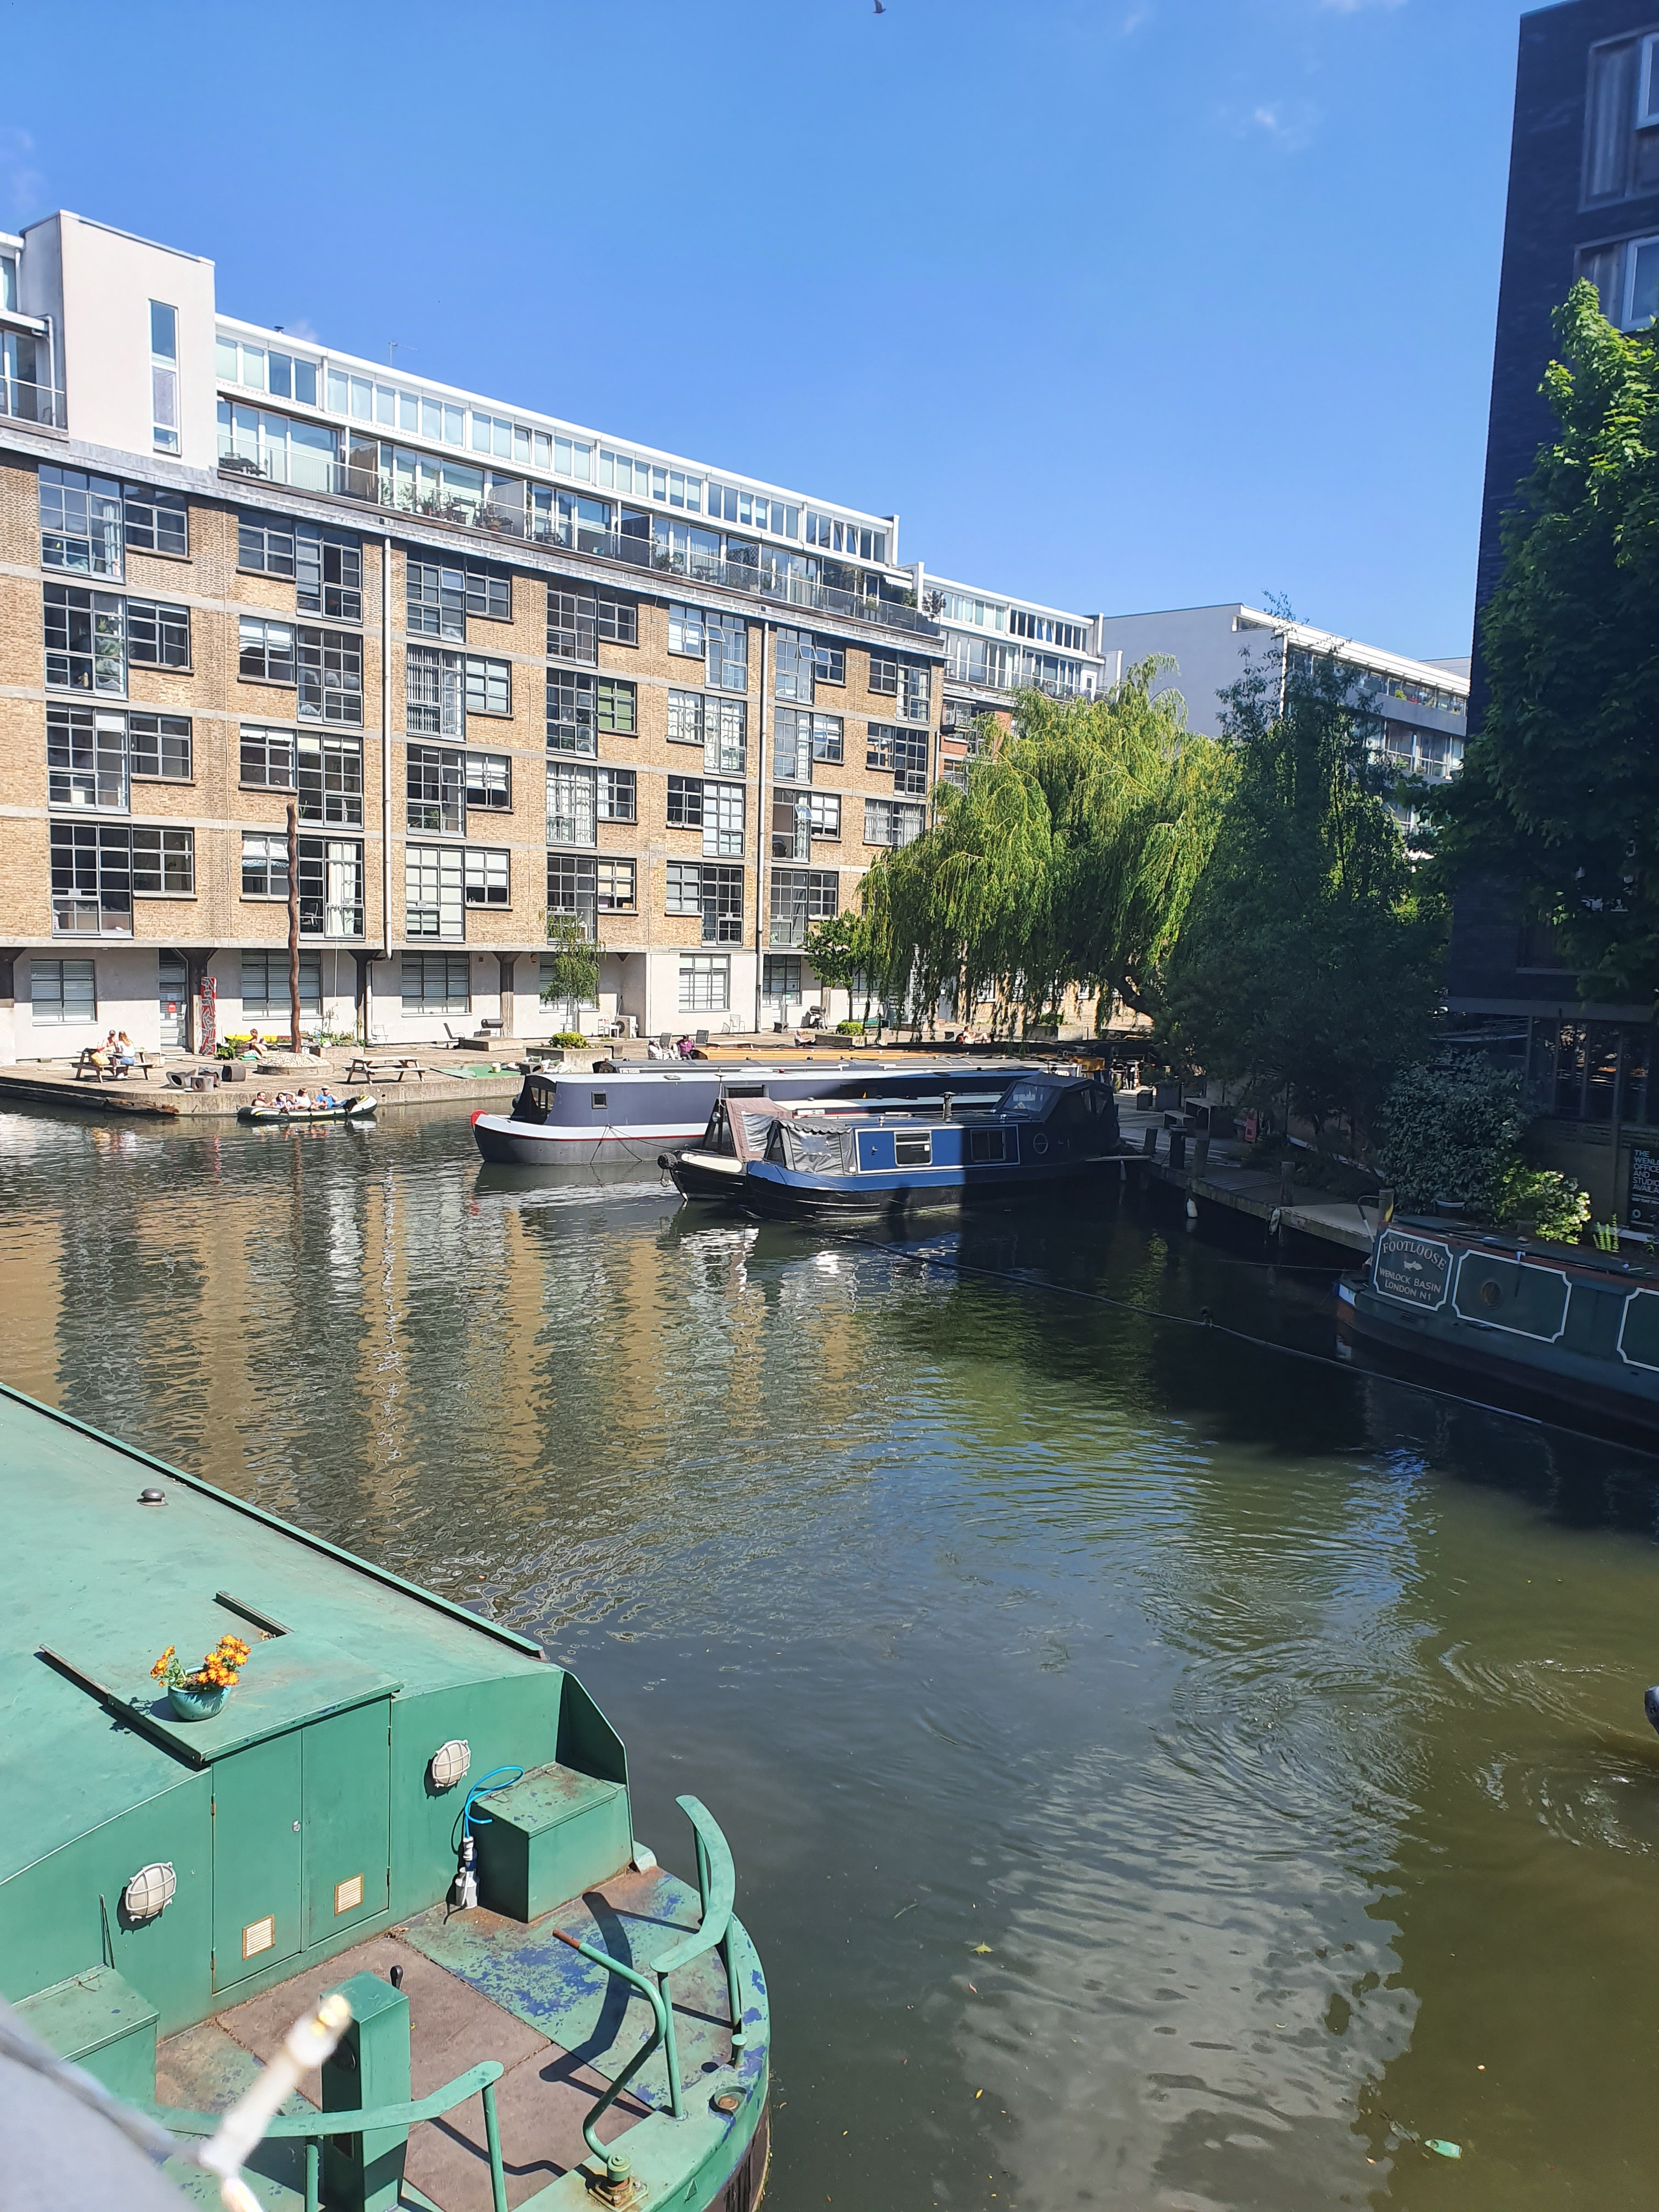 The view from the outside tables at the Narrowboat pub in Islington